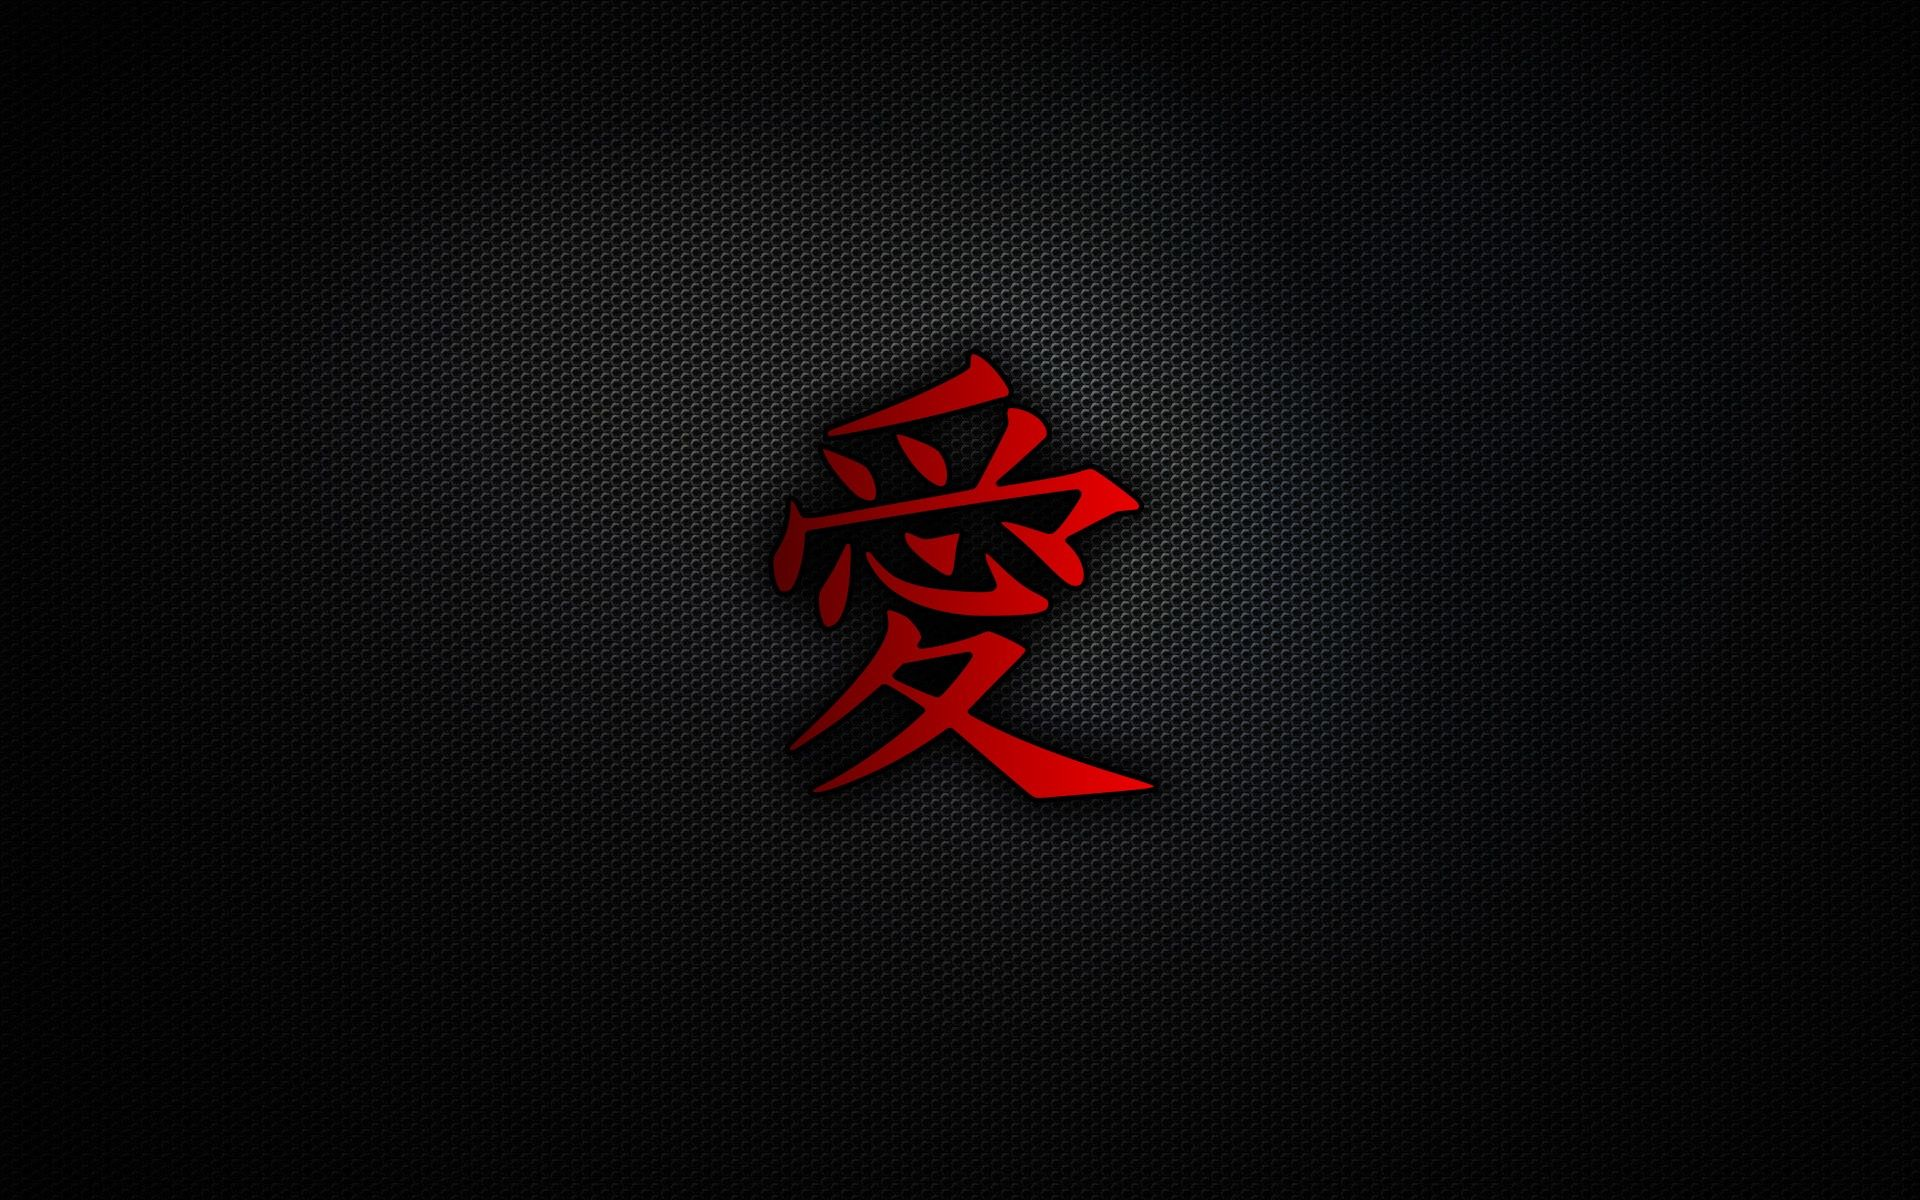 Japanese Logo Wallpapers   Top Japanese Logo Backgrounds 1920x1200